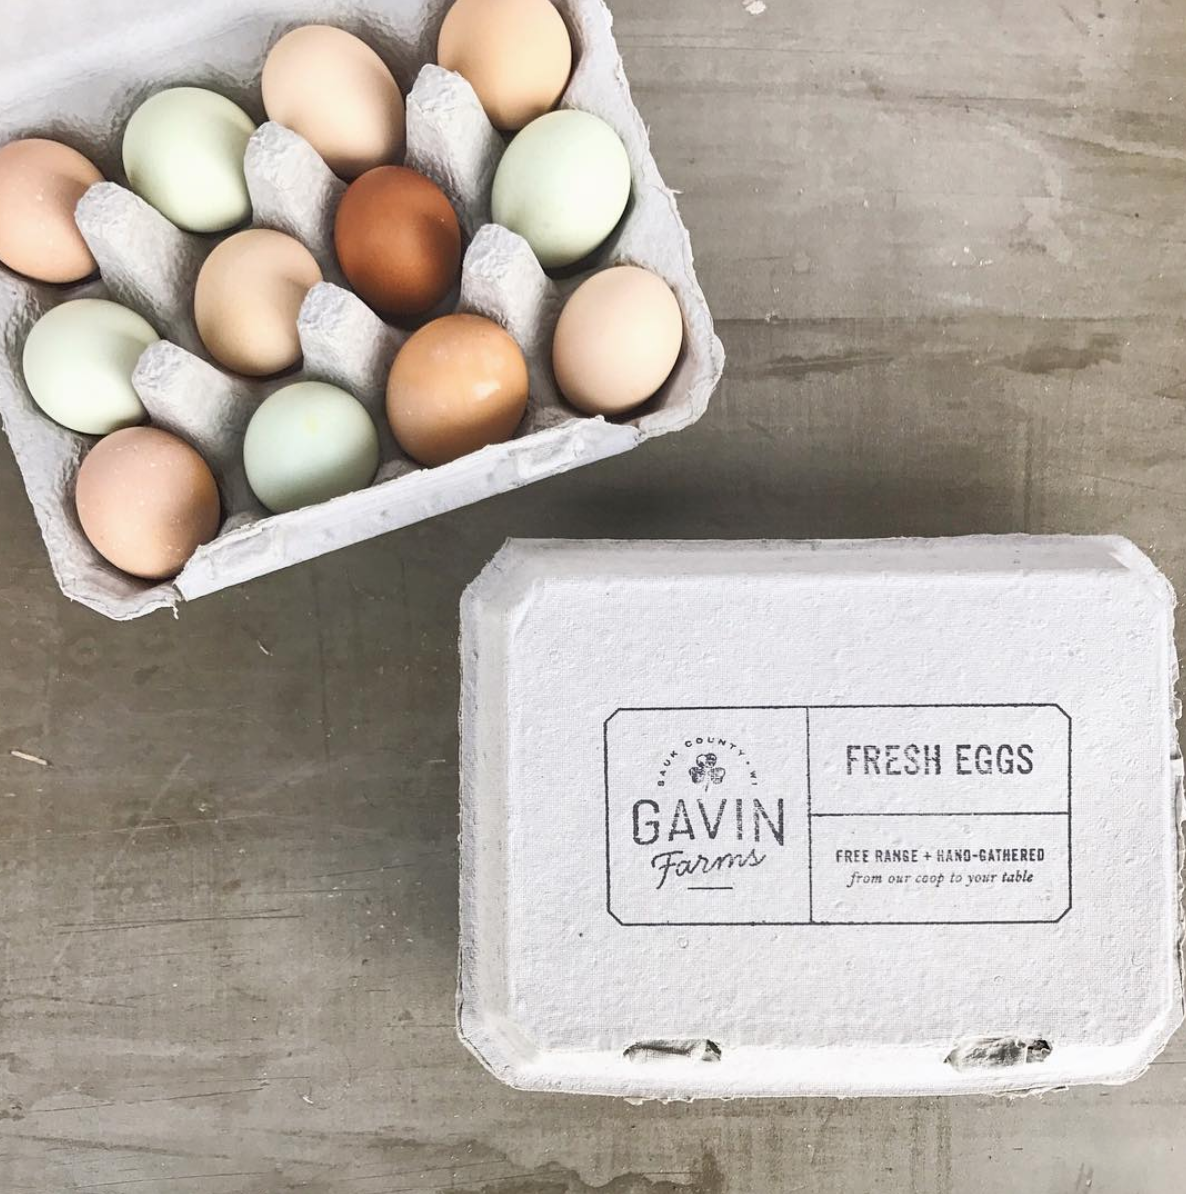 gavin-farms-free-range-egg-cartons